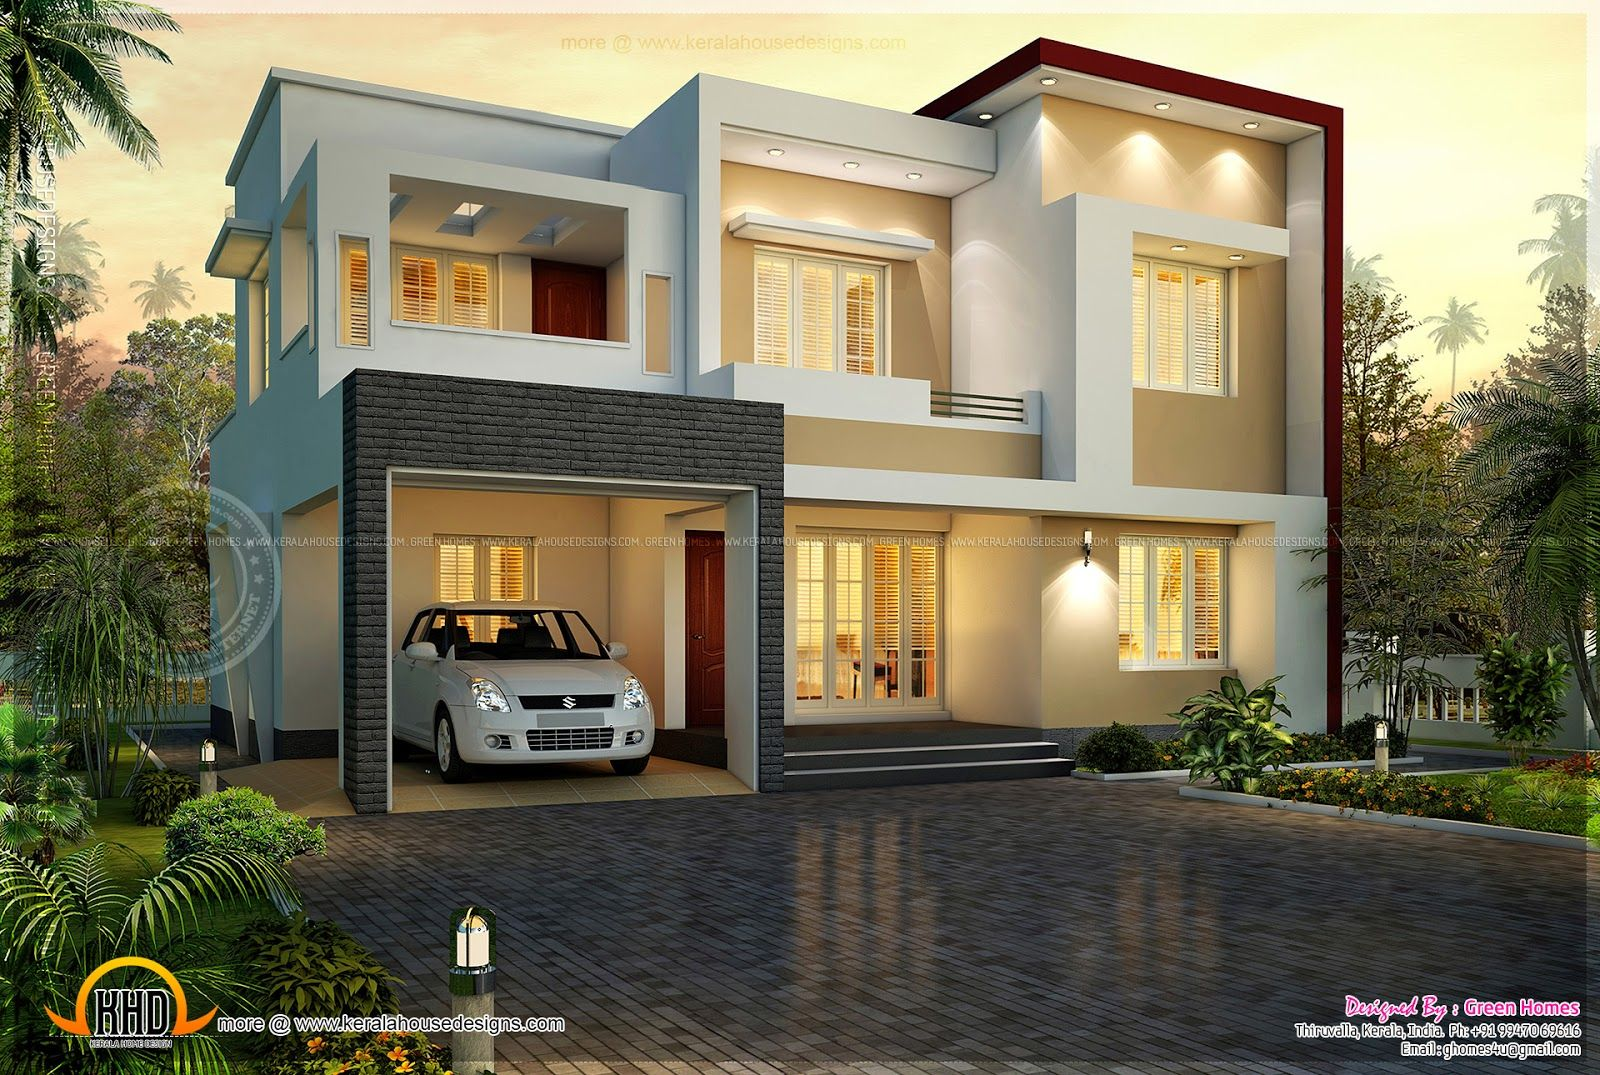 flat roof house sq feet flat roof contemporary home design home kerala plans  Home Design in